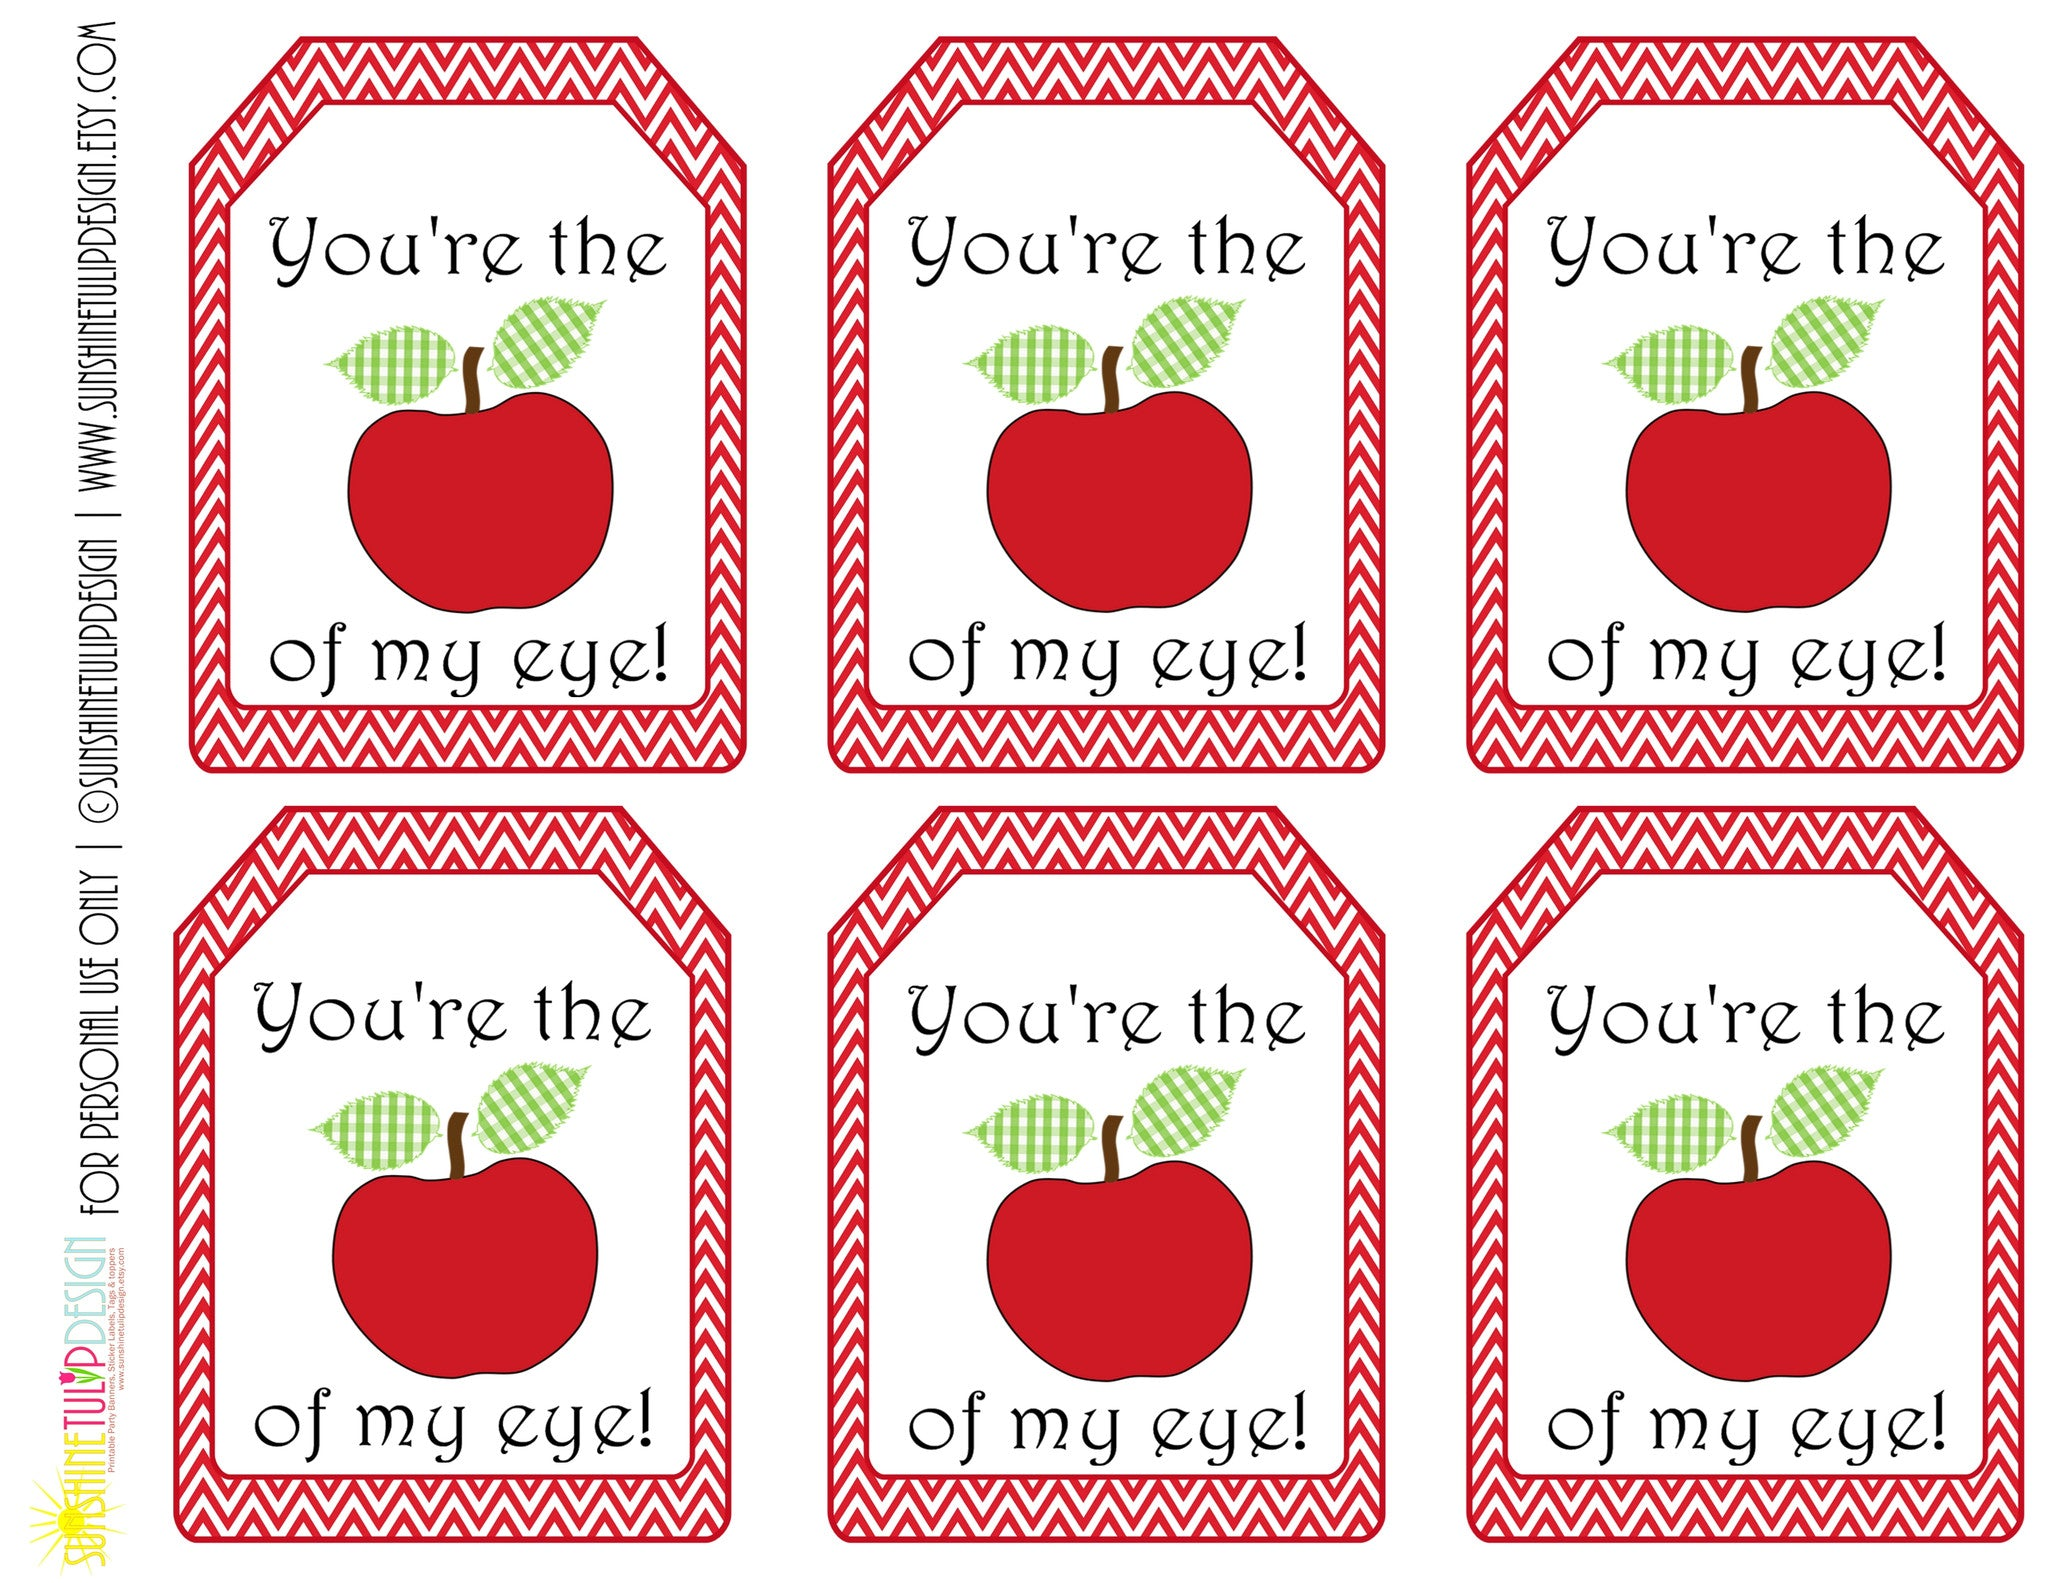 Printable Teacher Appreciation Gift Tags You Re The Apple Of My Eye By Sunshinetulipdesign